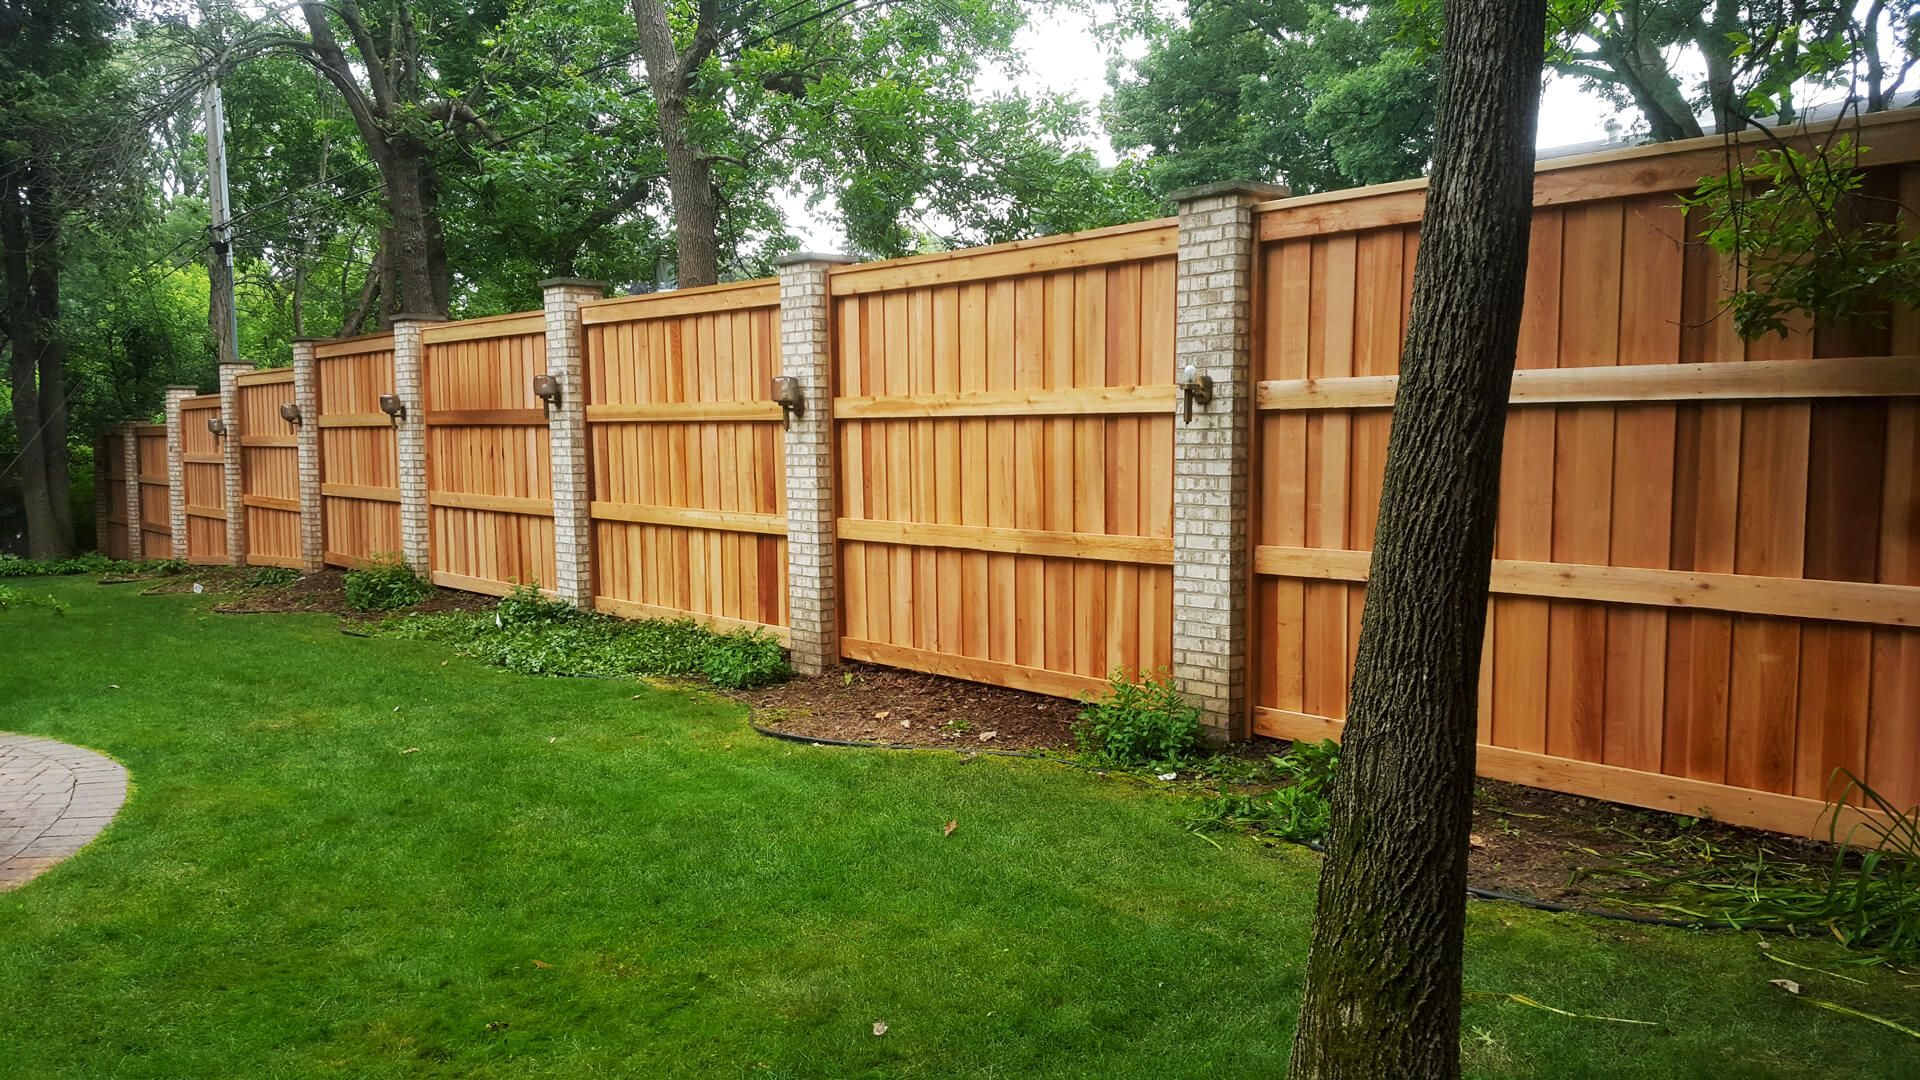 How To Build A Wood Fence On Uneven Ground Best Image Webproxp Com